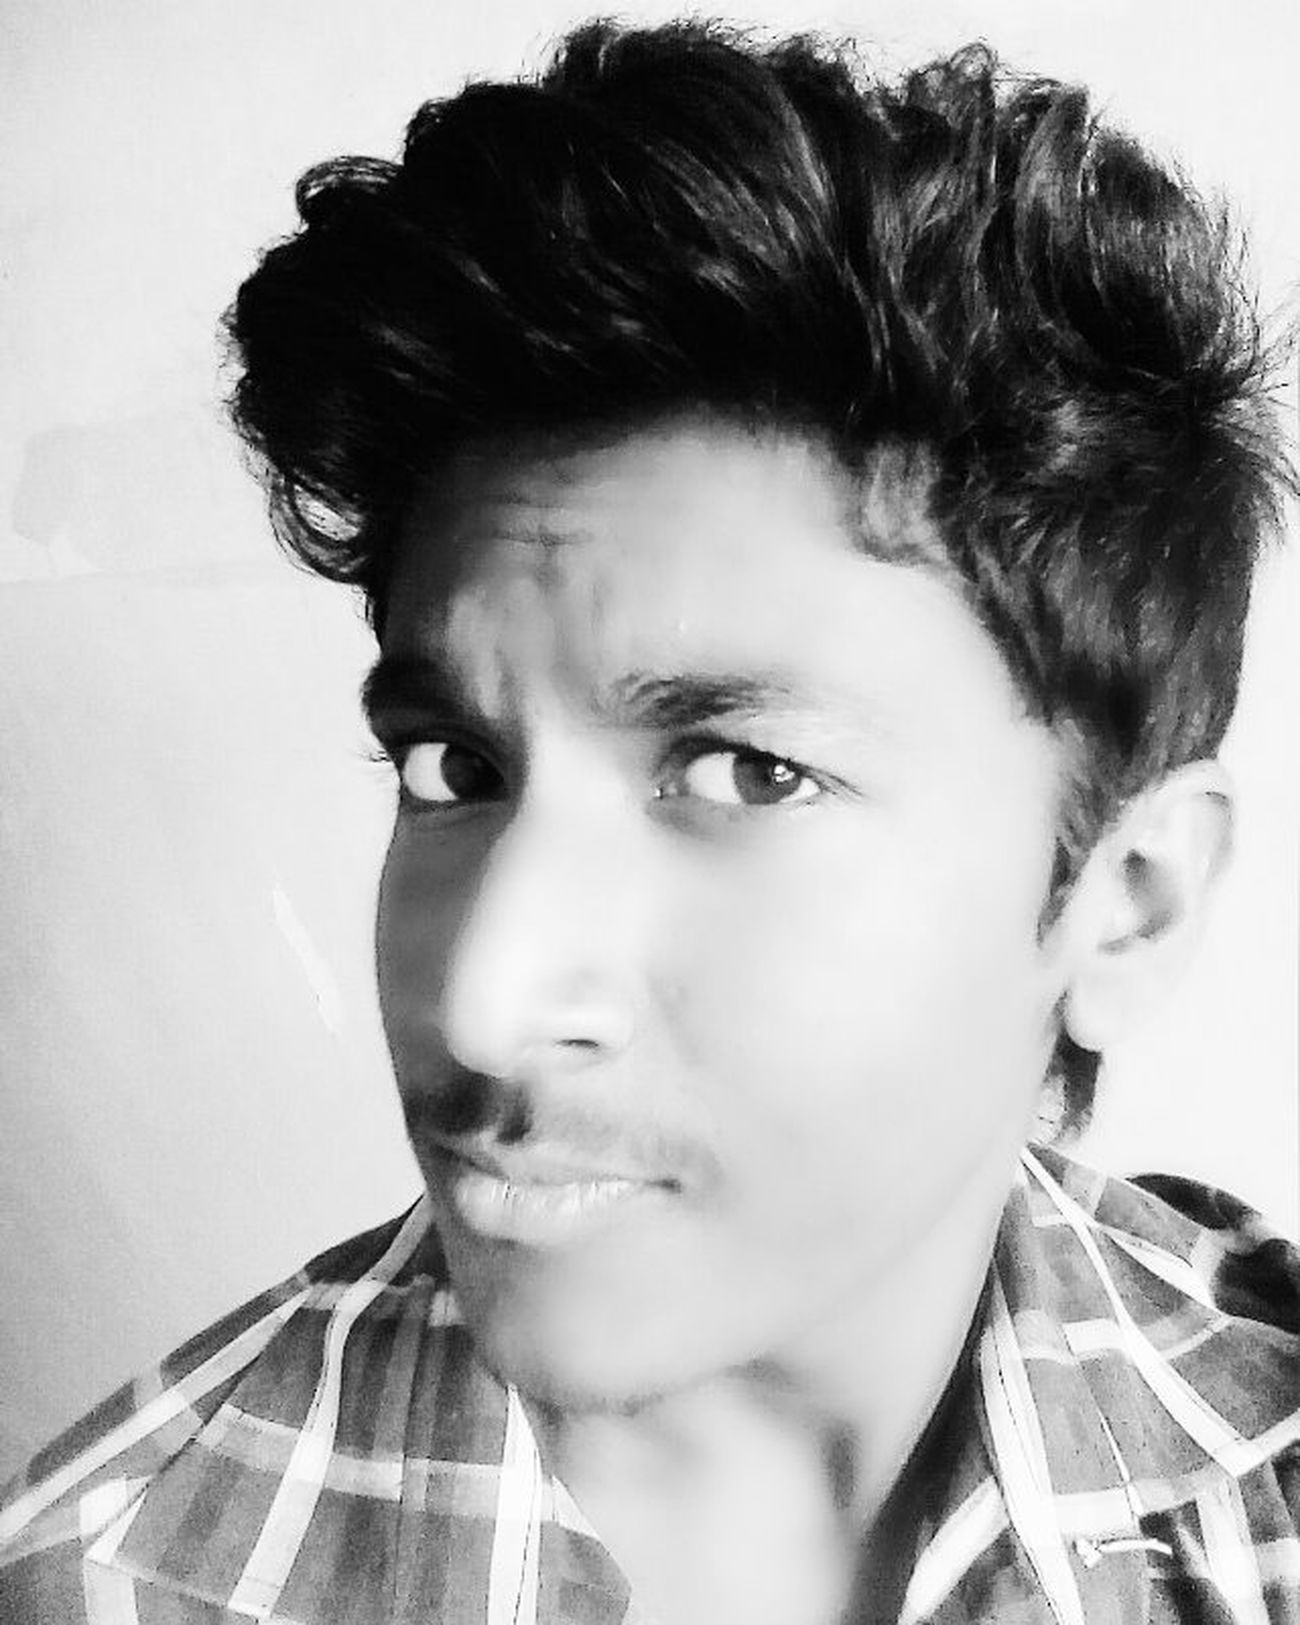 Turn down for what😎Me Selfie Instagram Filter Inkwell Blackandwhite Vintage Awesome Instalike Instacute Instacool Instagood Like4follow Like4like L4l Picsart Checks Follow4follow